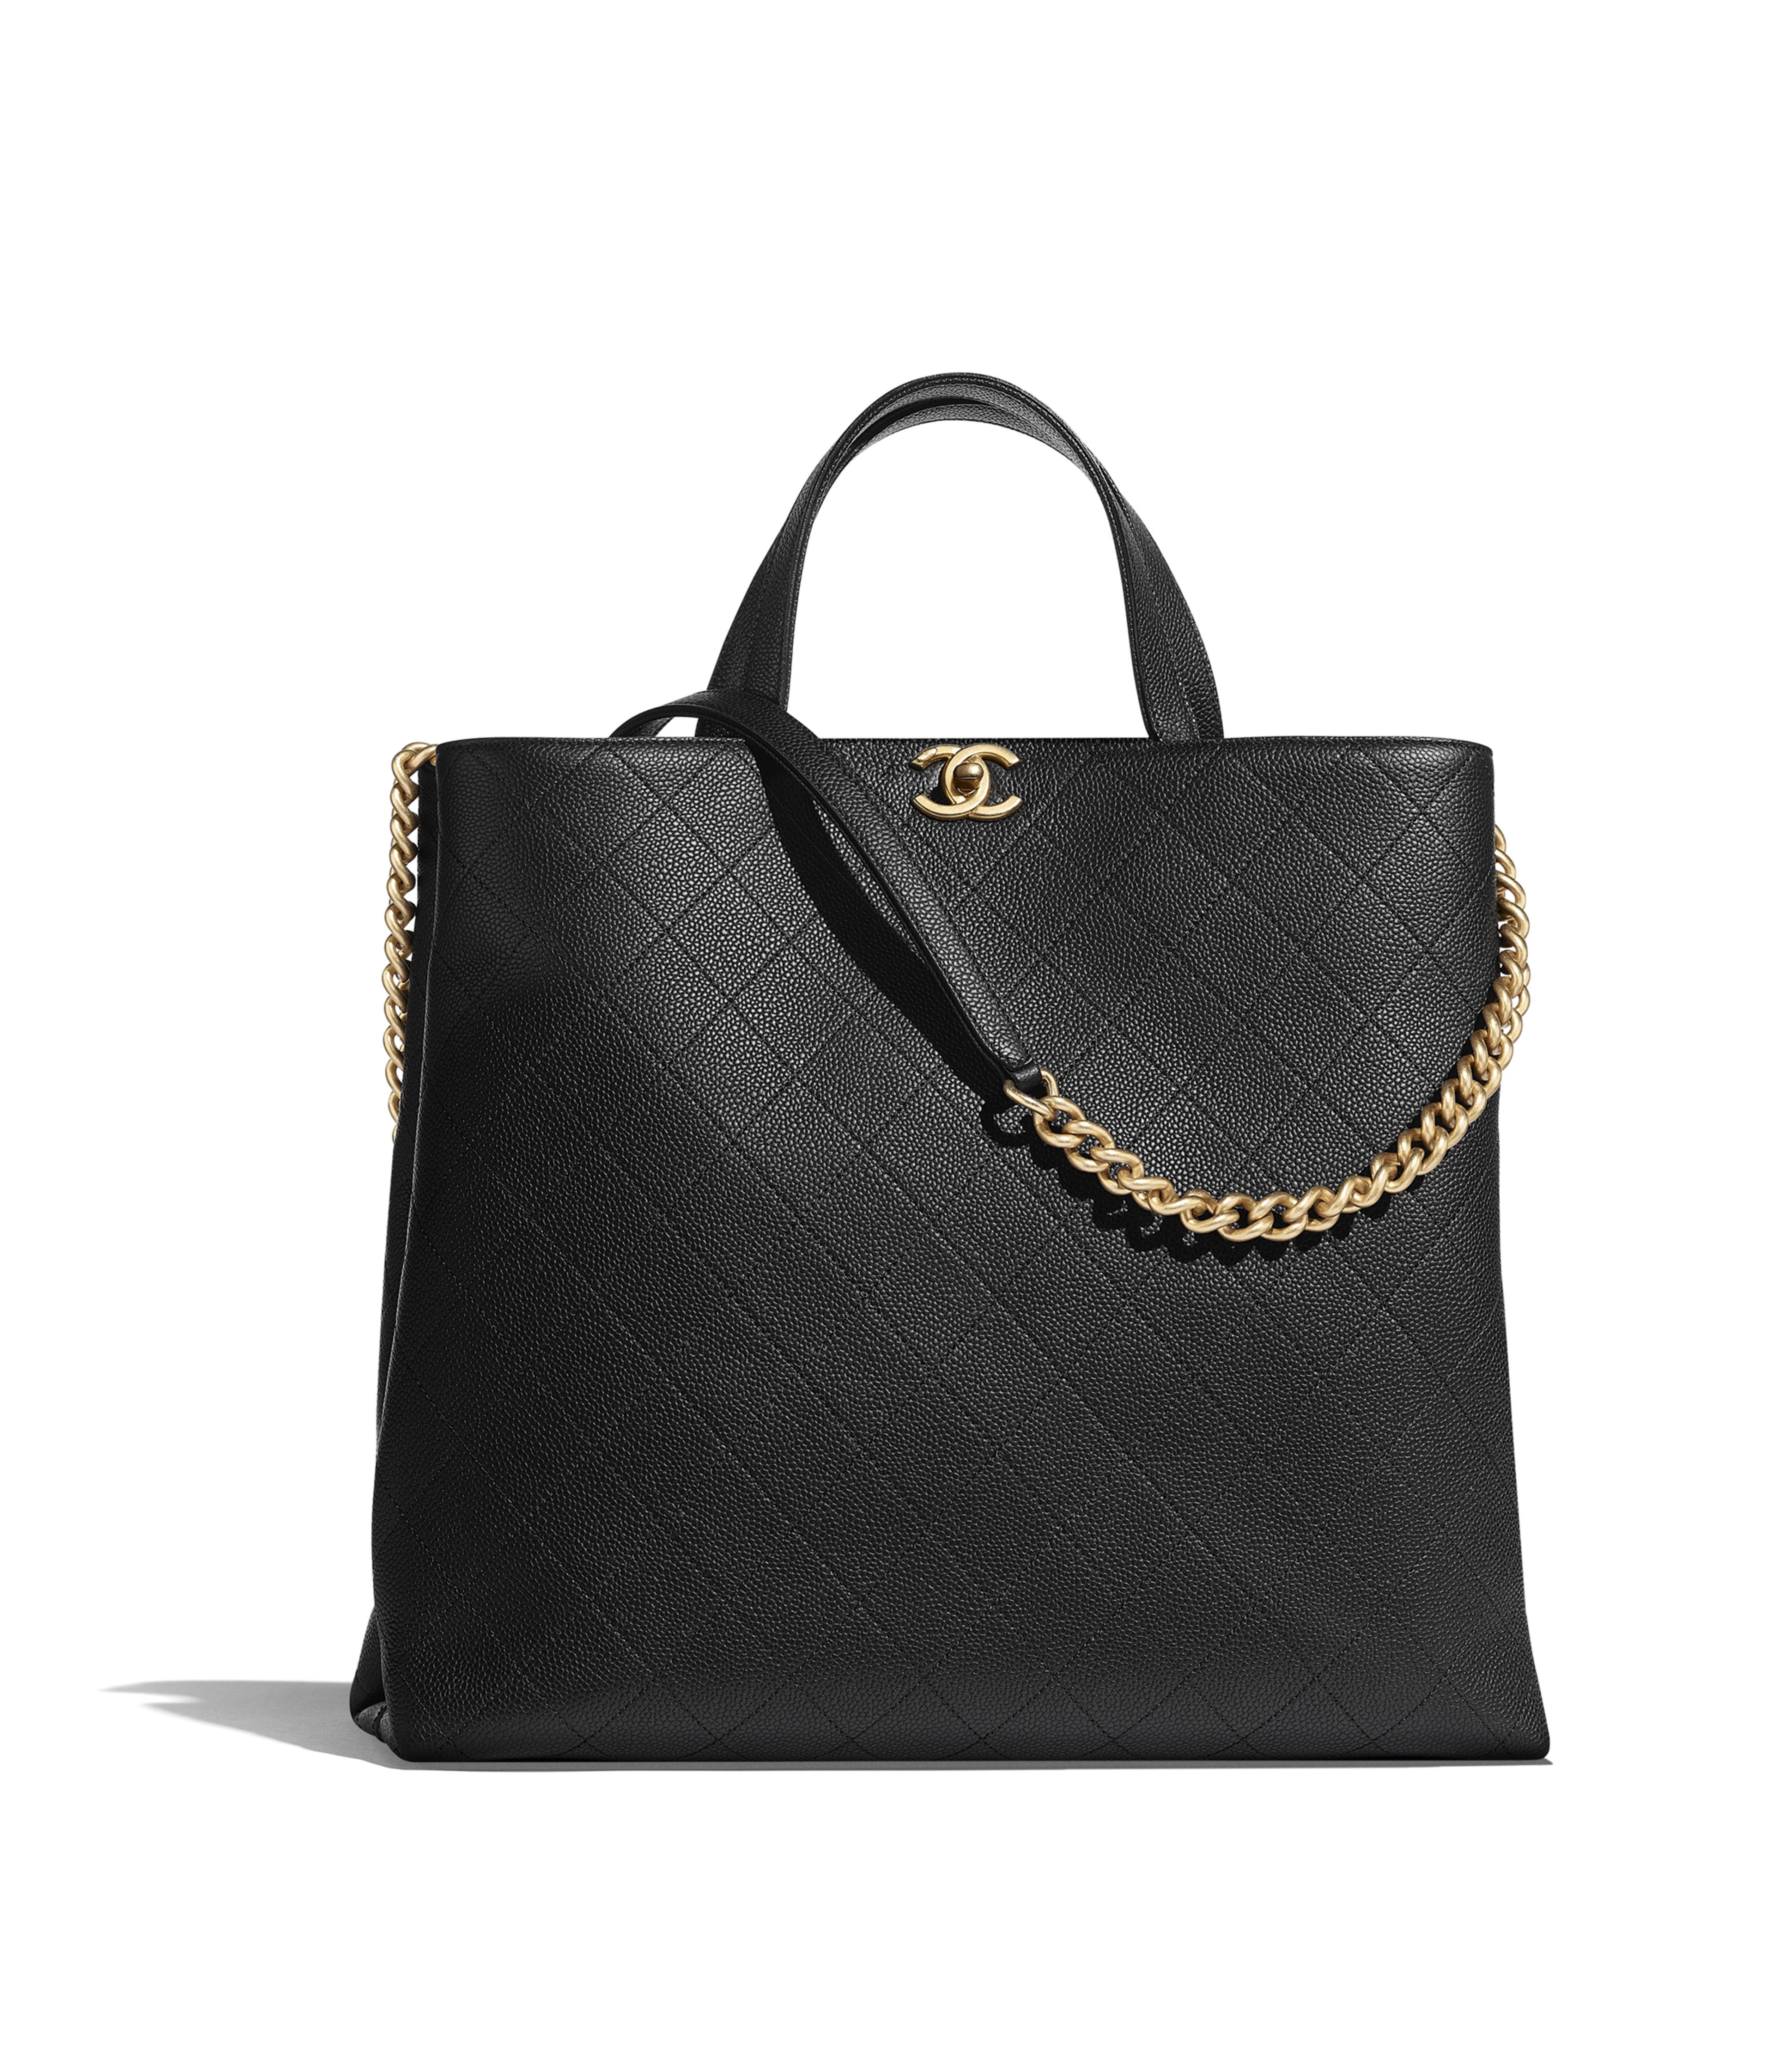 90d9eb41d4 Large Shopping Bag Grained Calfskin & Gold-Tone Metal, Black Ref.  AS0312B0017094305